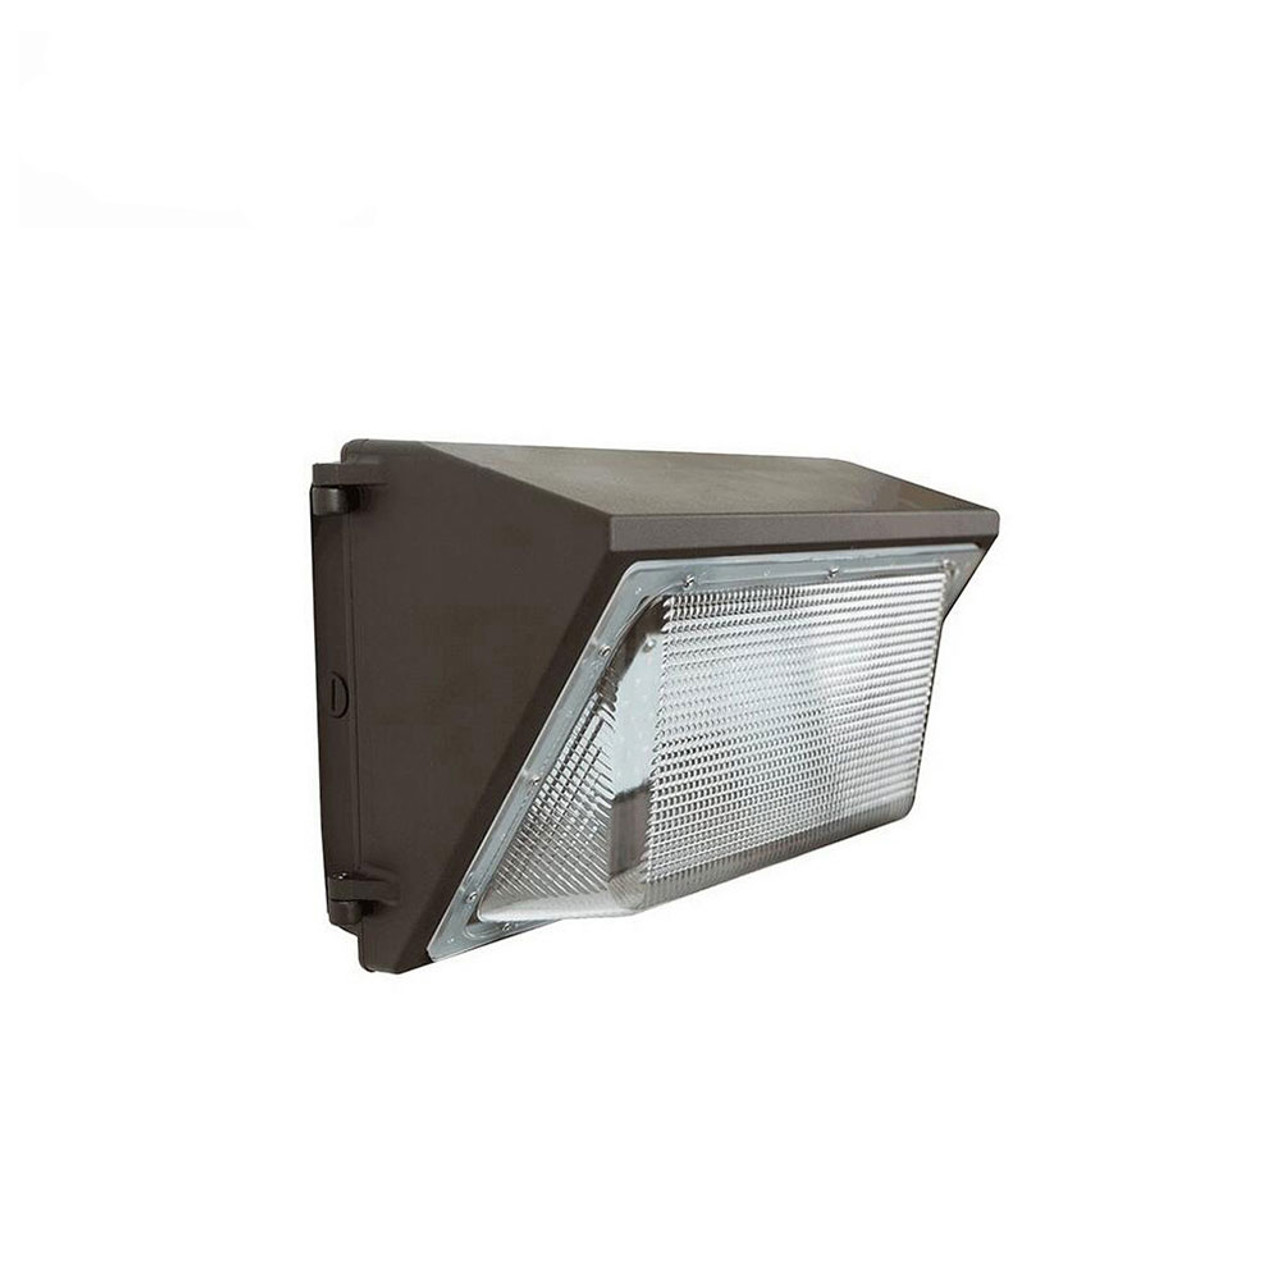 LED Wall Pack, 42 Watt, 5040 lumen, 5000 Kelvin, 100-277 volt, UL and DLC Listed